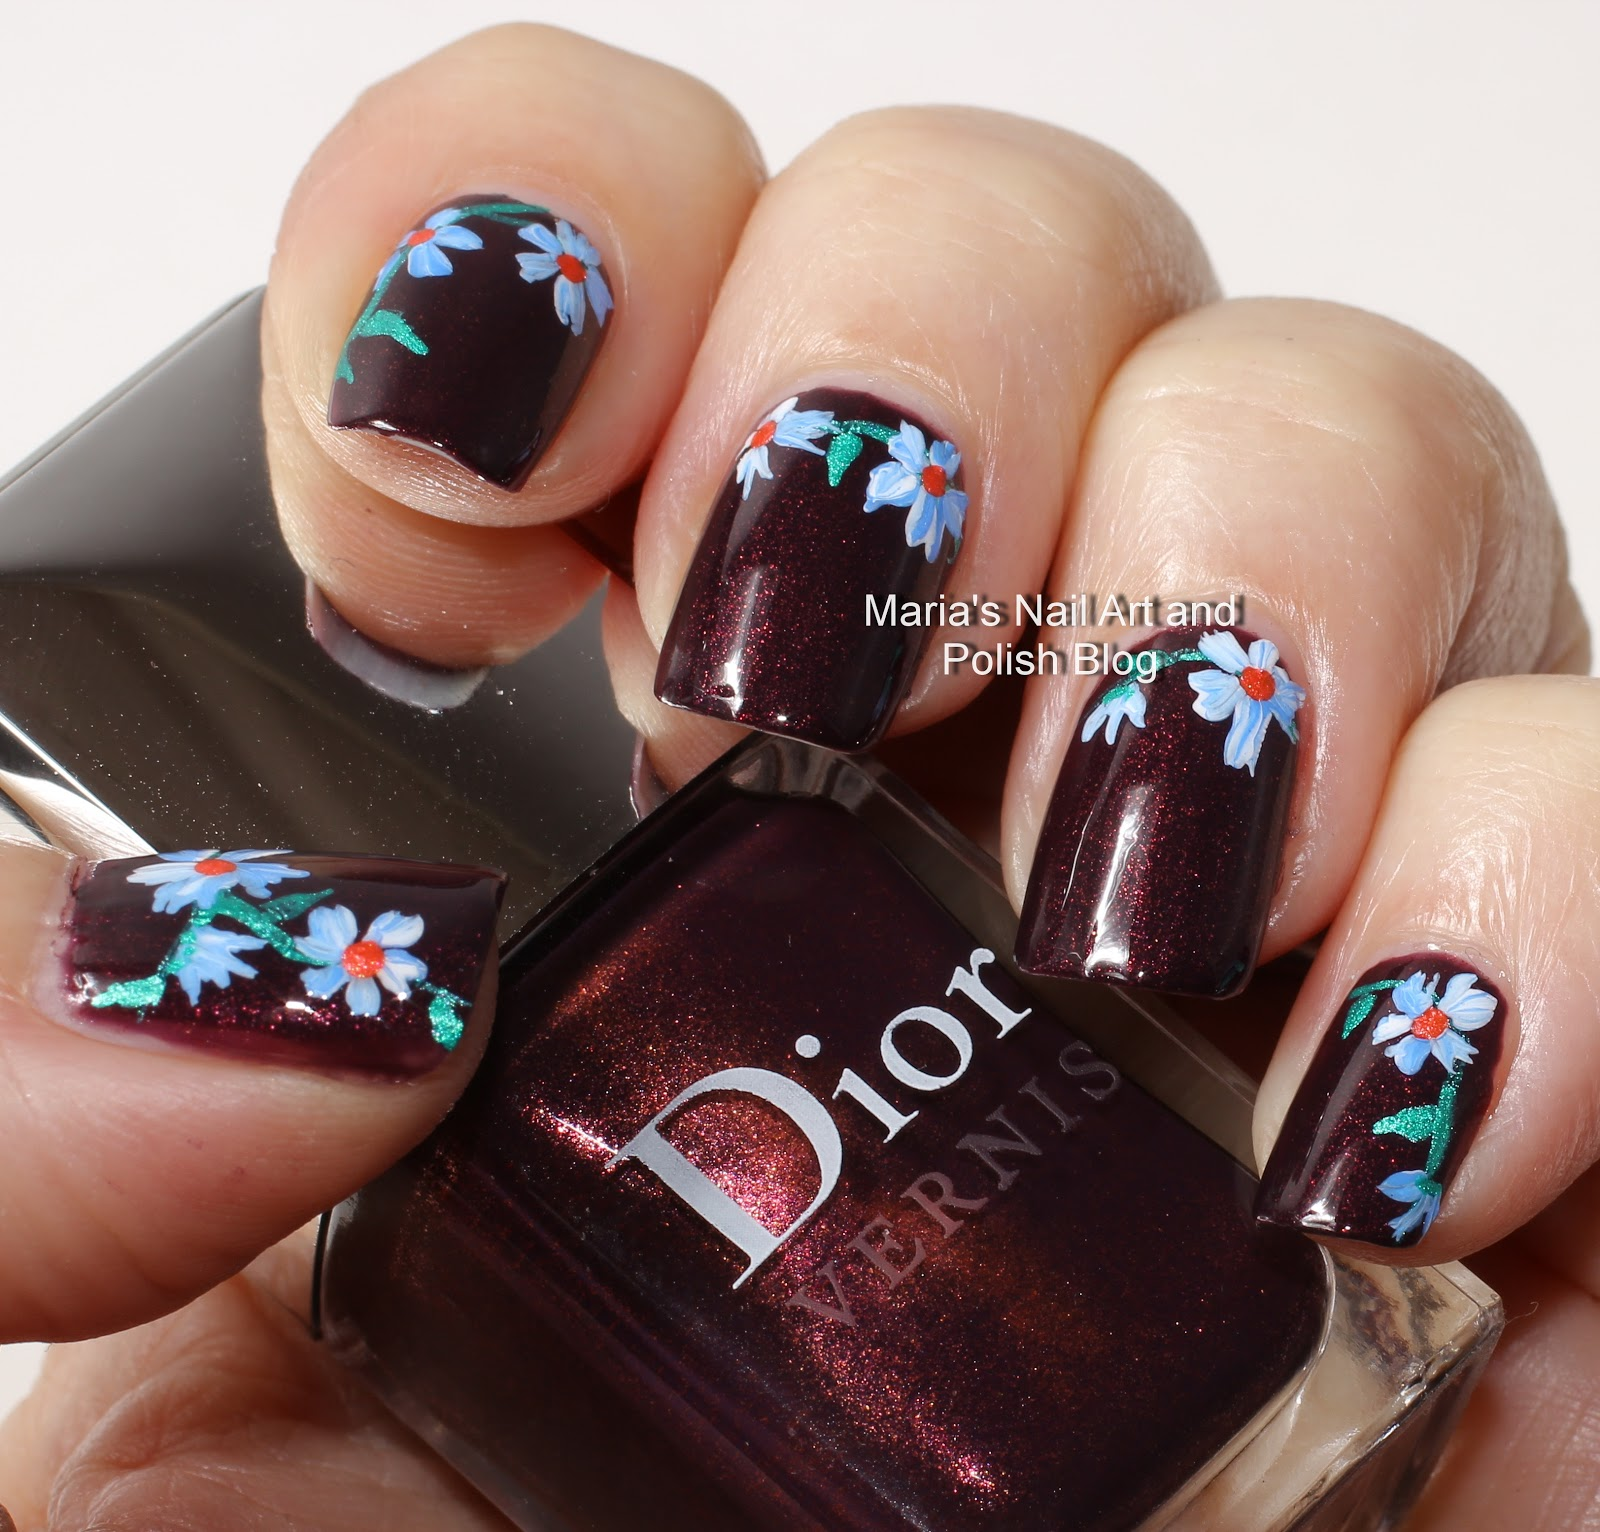 Marias Nail Art And Polish Blog Subtle Floral Nail Art On: Marias Nail Art And Polish Blog: Licorice Flowers